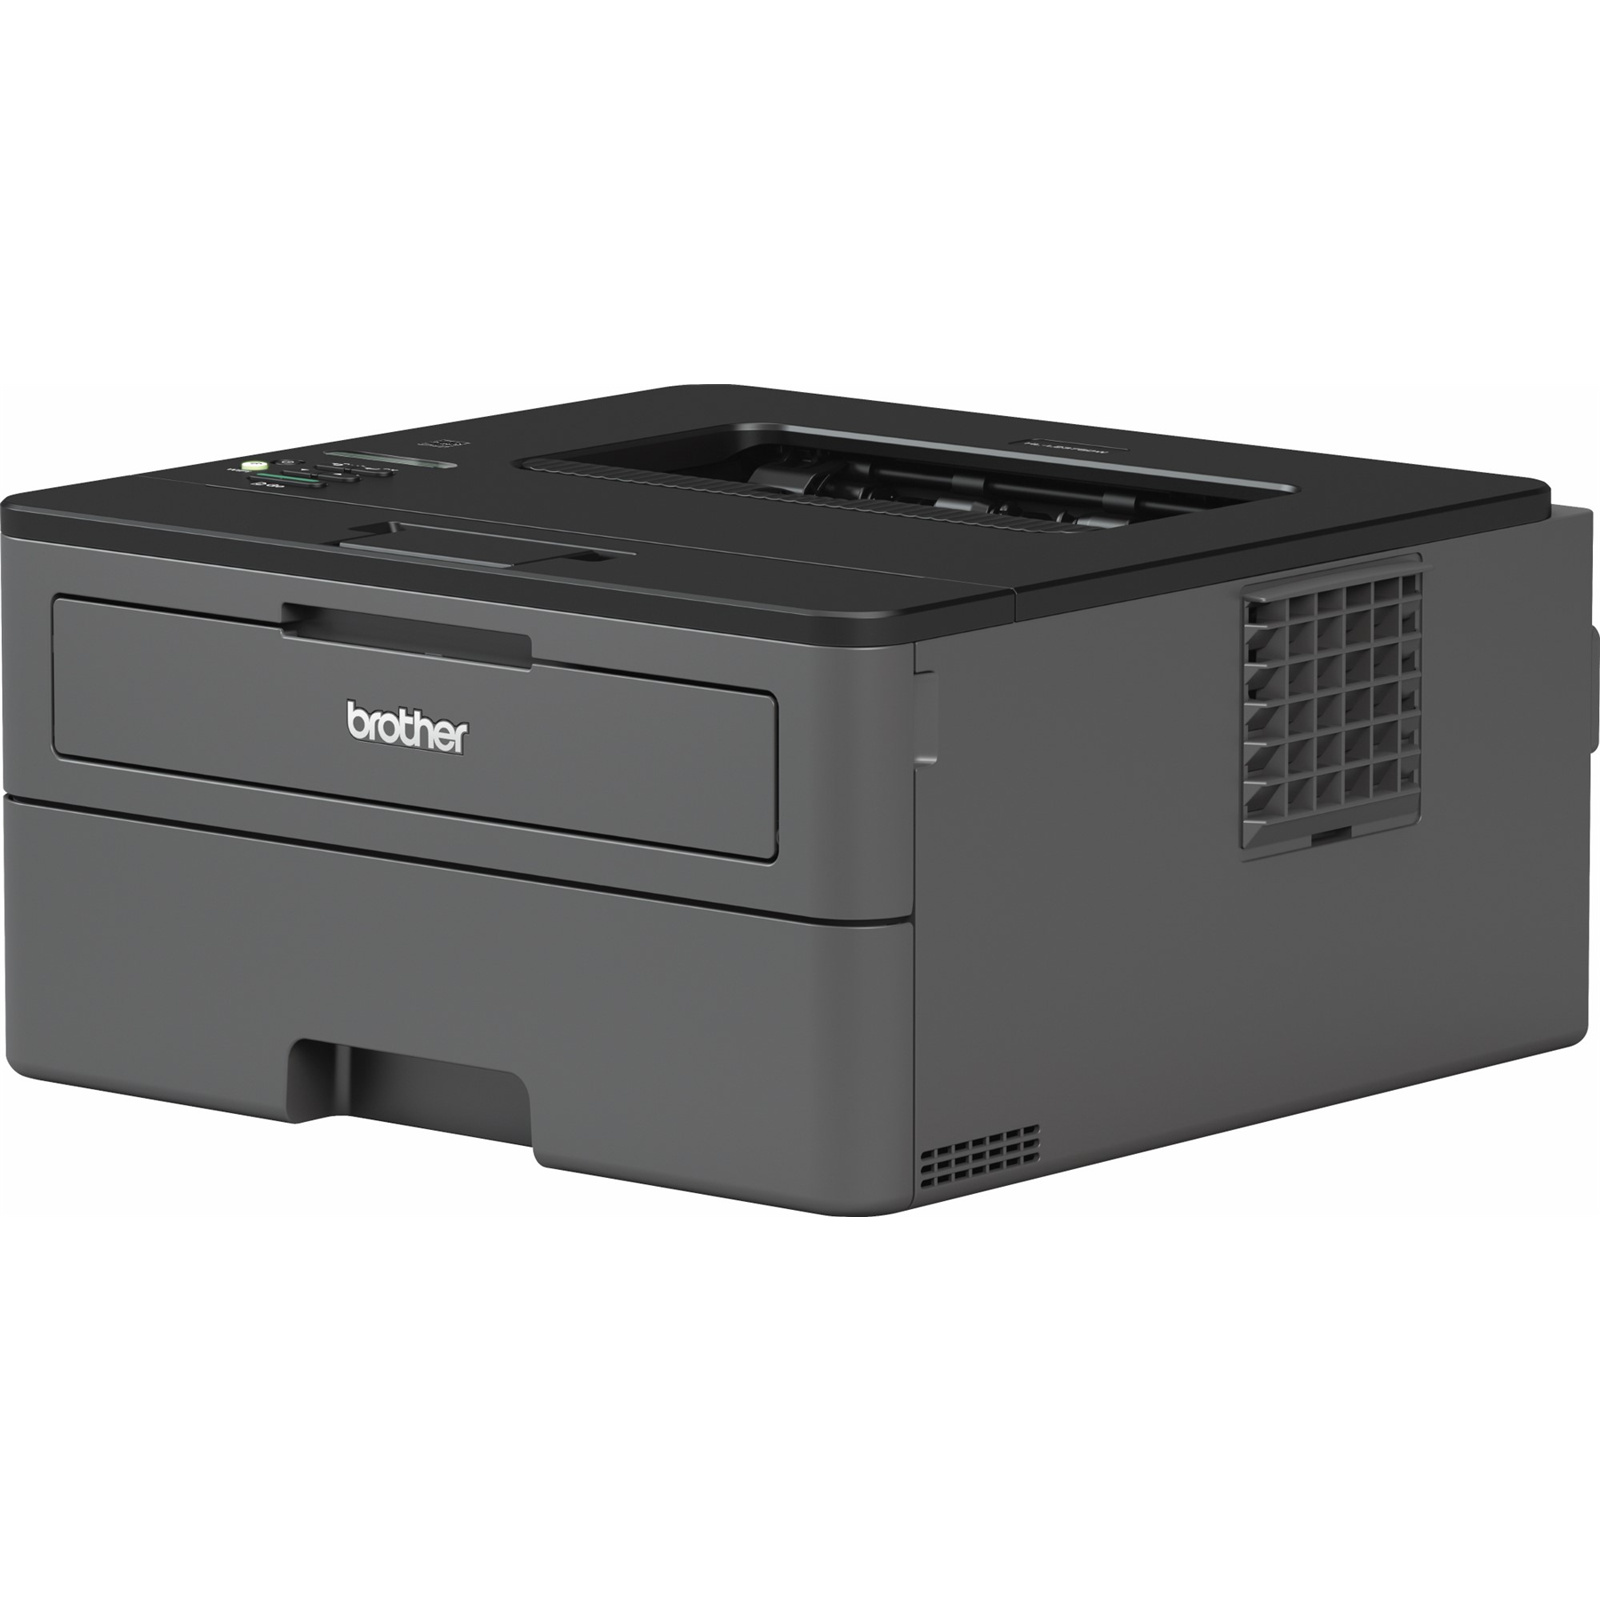 Buy the Brother HLL2375DW Mono Laser Printer Black AirPrint